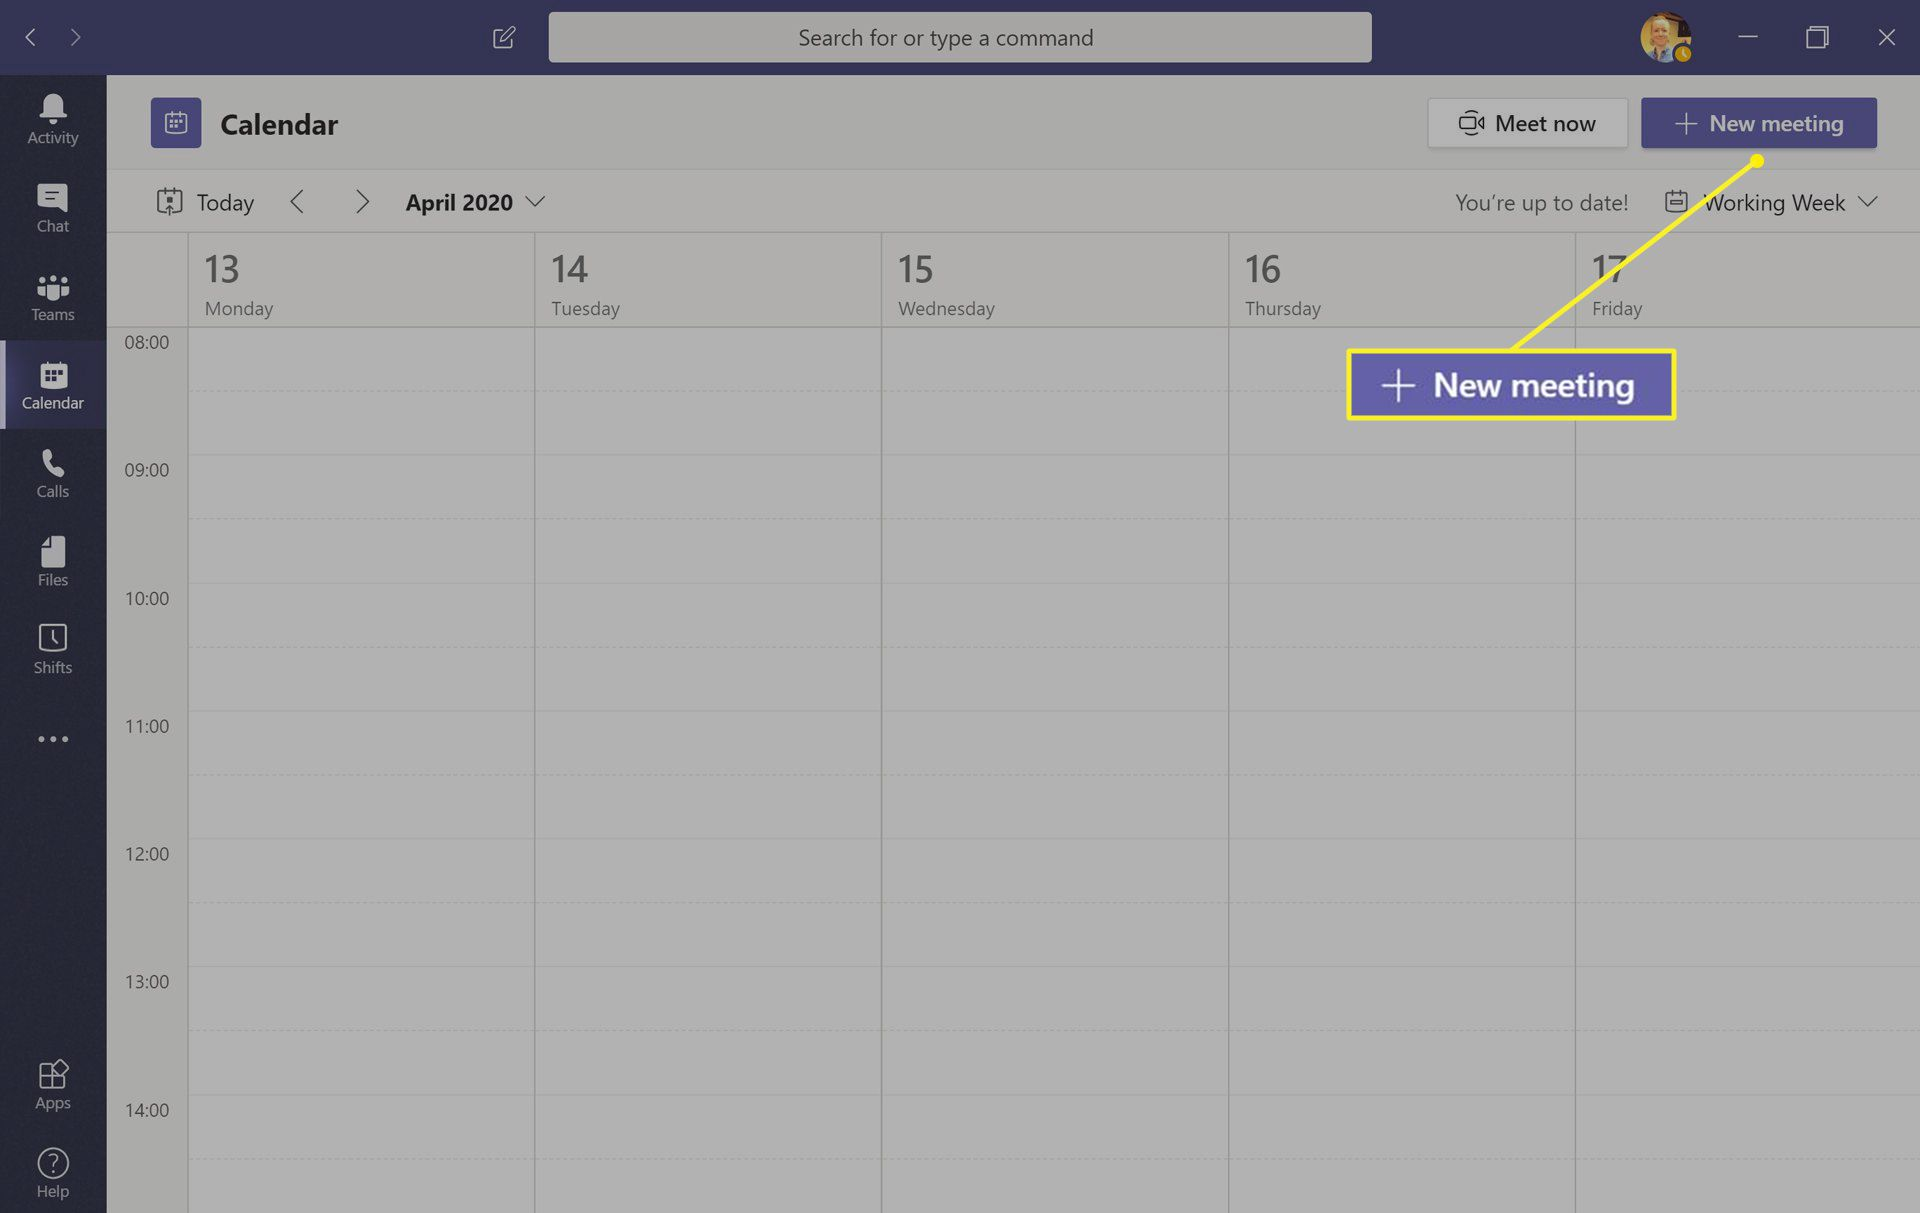 Microsoft Teams app with New meeting highlighted